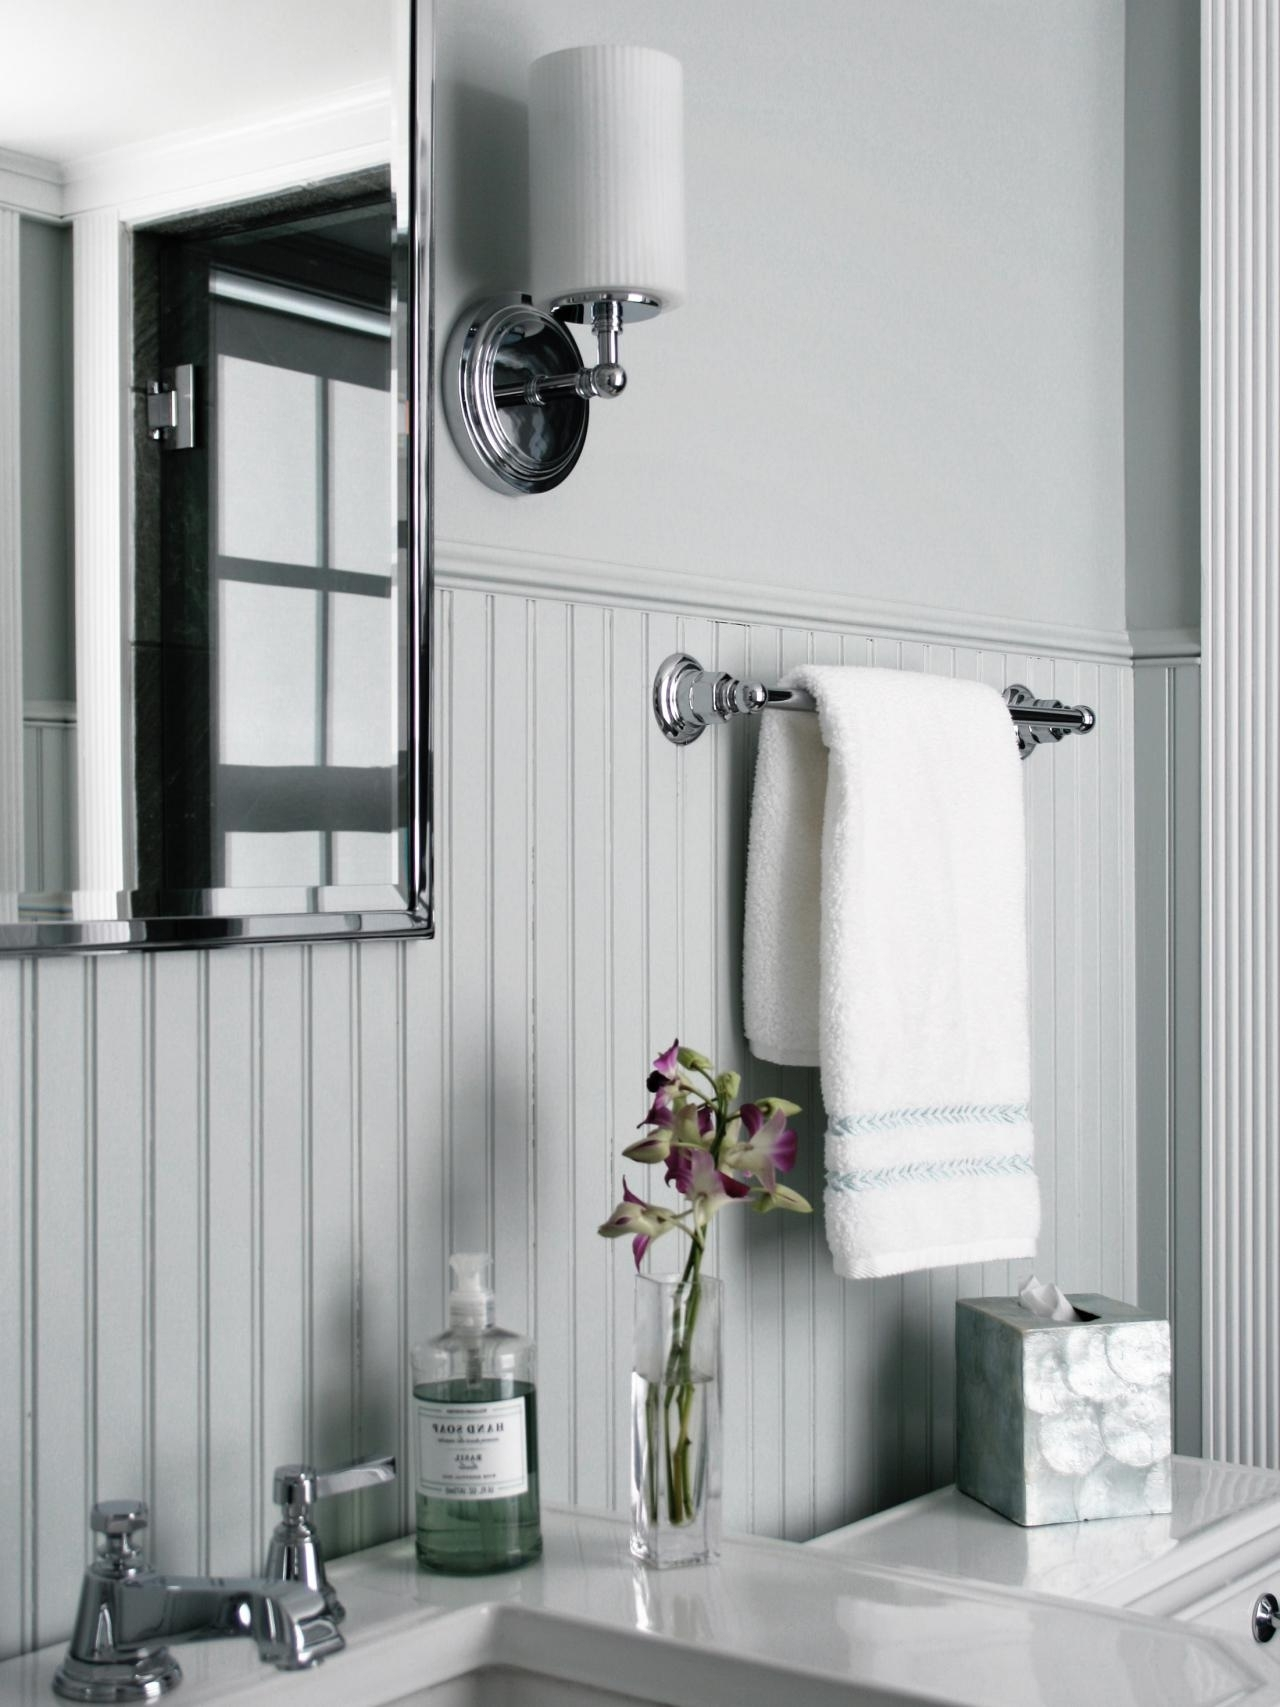 How To Cover Dated Bathroom Tile With Wainscoting | Hgtv Wainscoting Bathroom Pictures